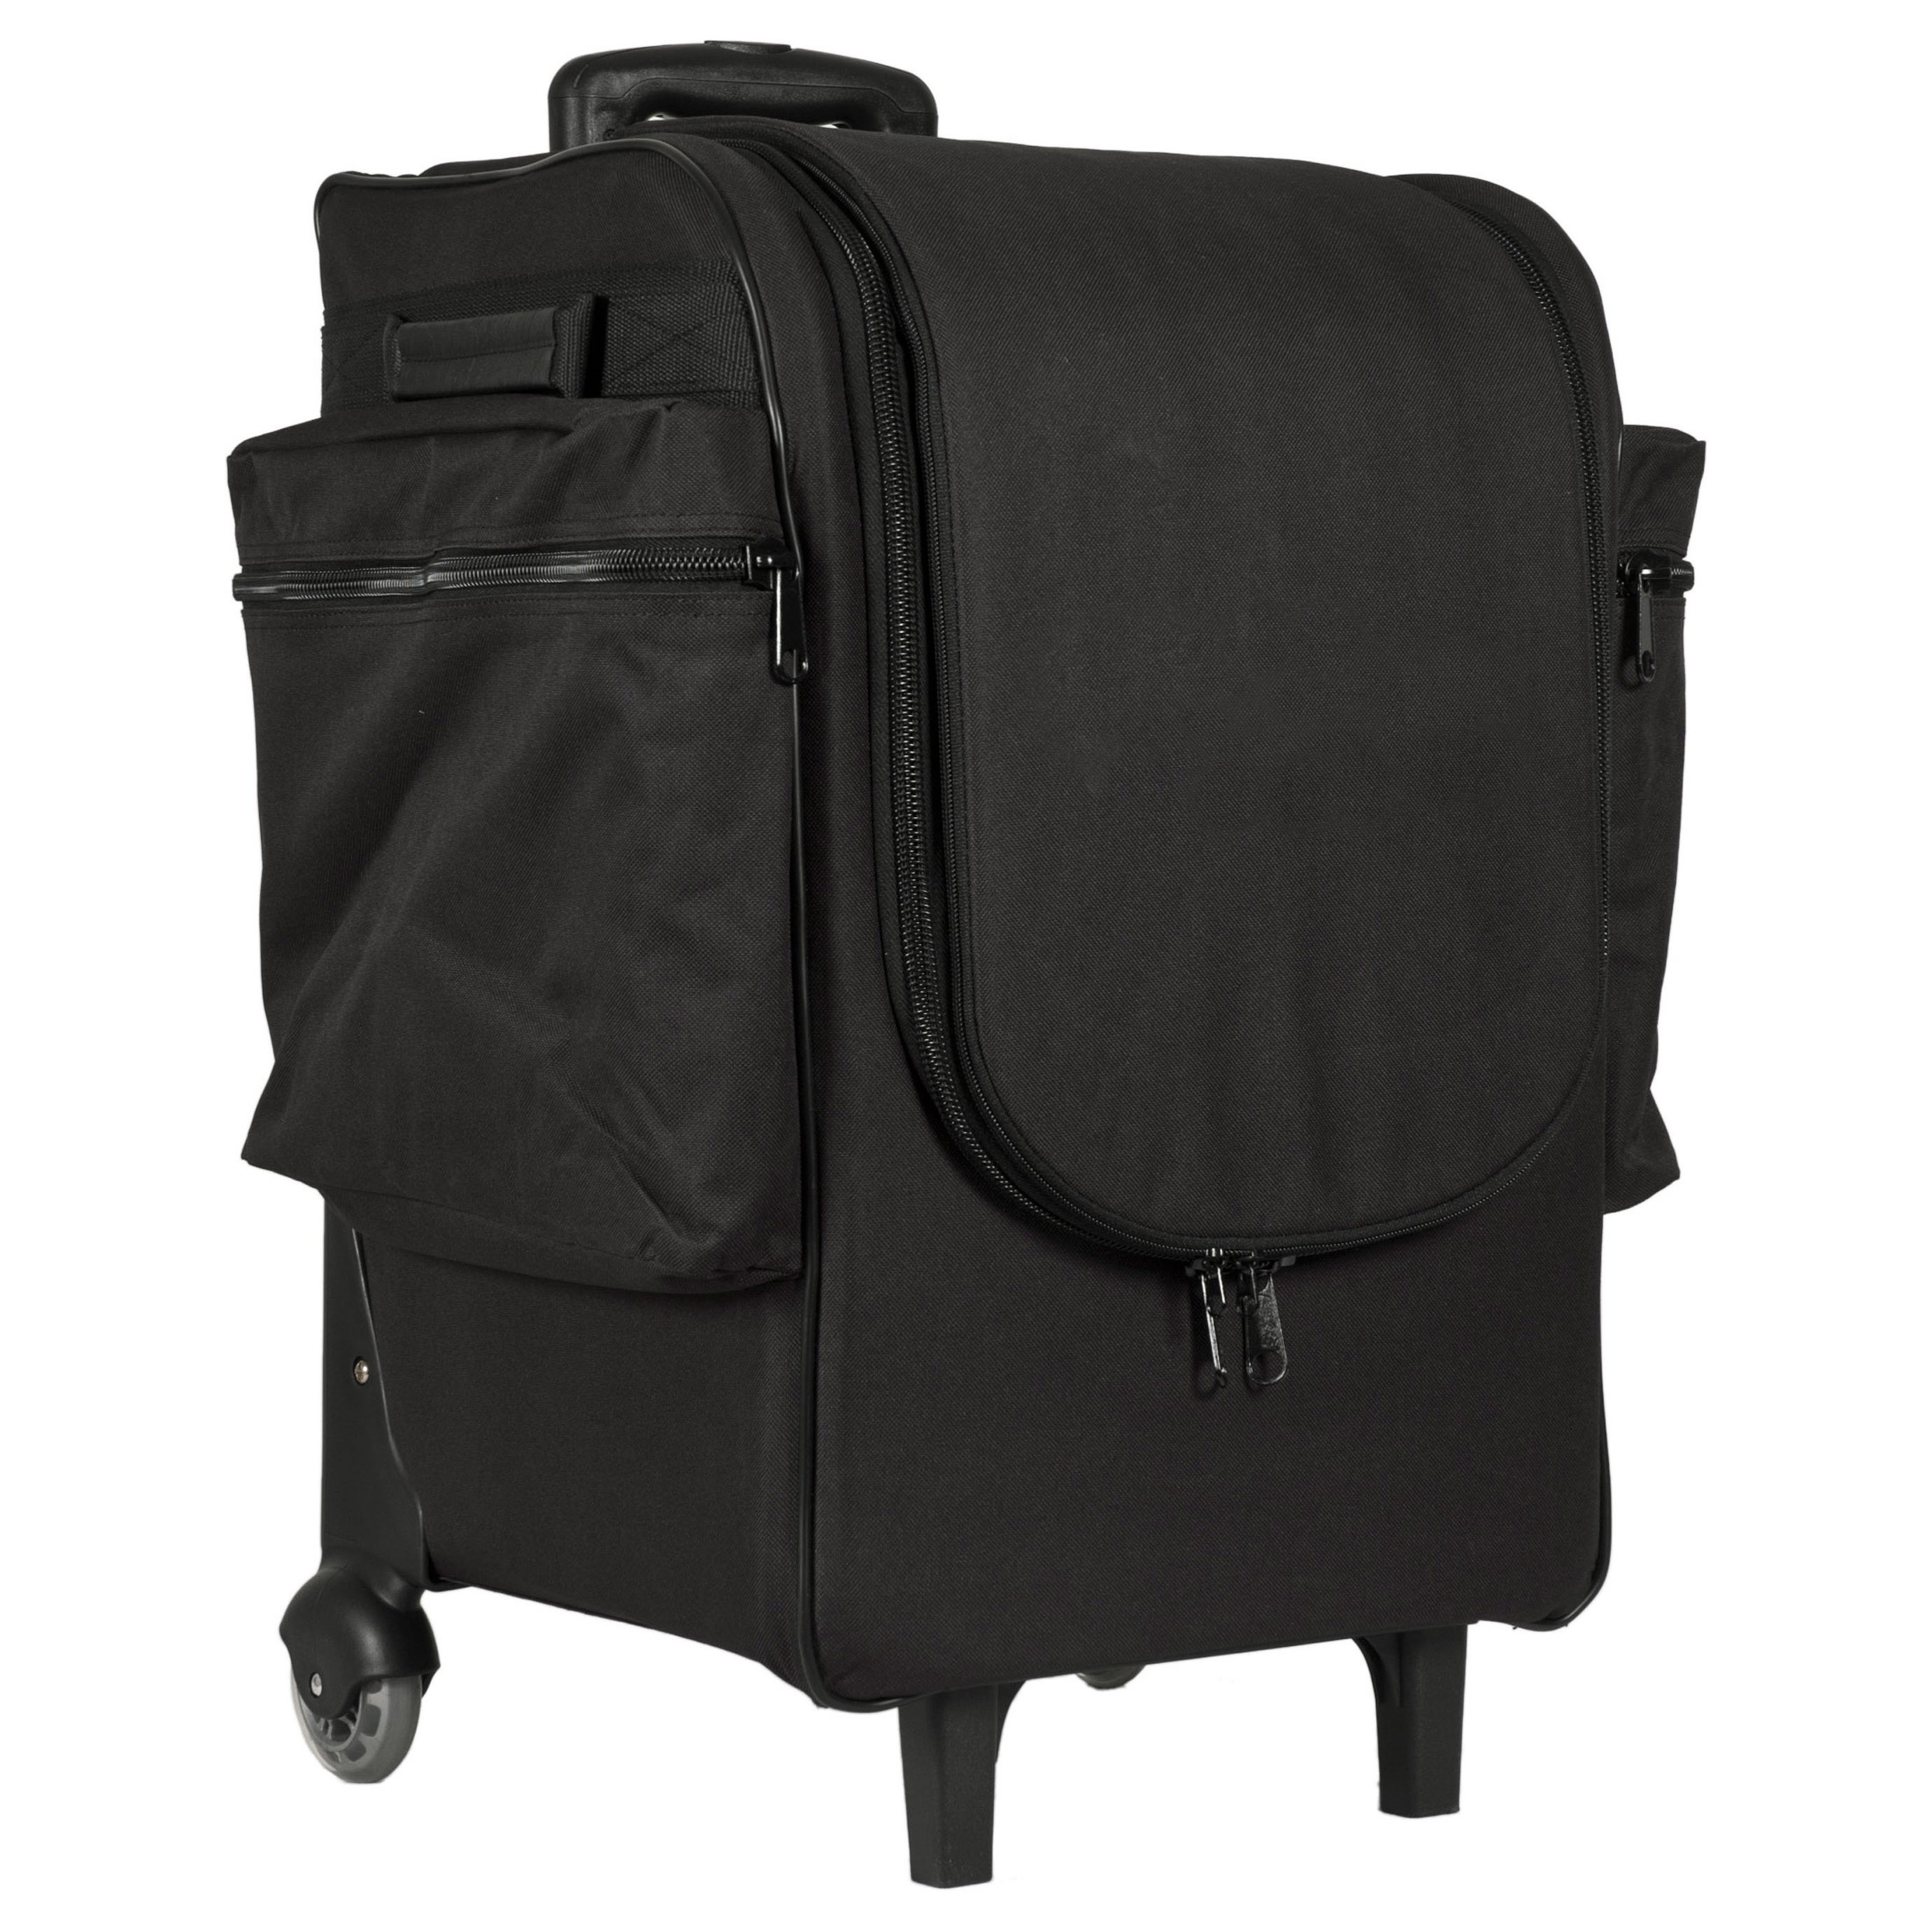 1817516233a Shop Amerileather Rolling 12-Bottle Wine Bag - Free Shipping Today -  Overstock.com - 10013946